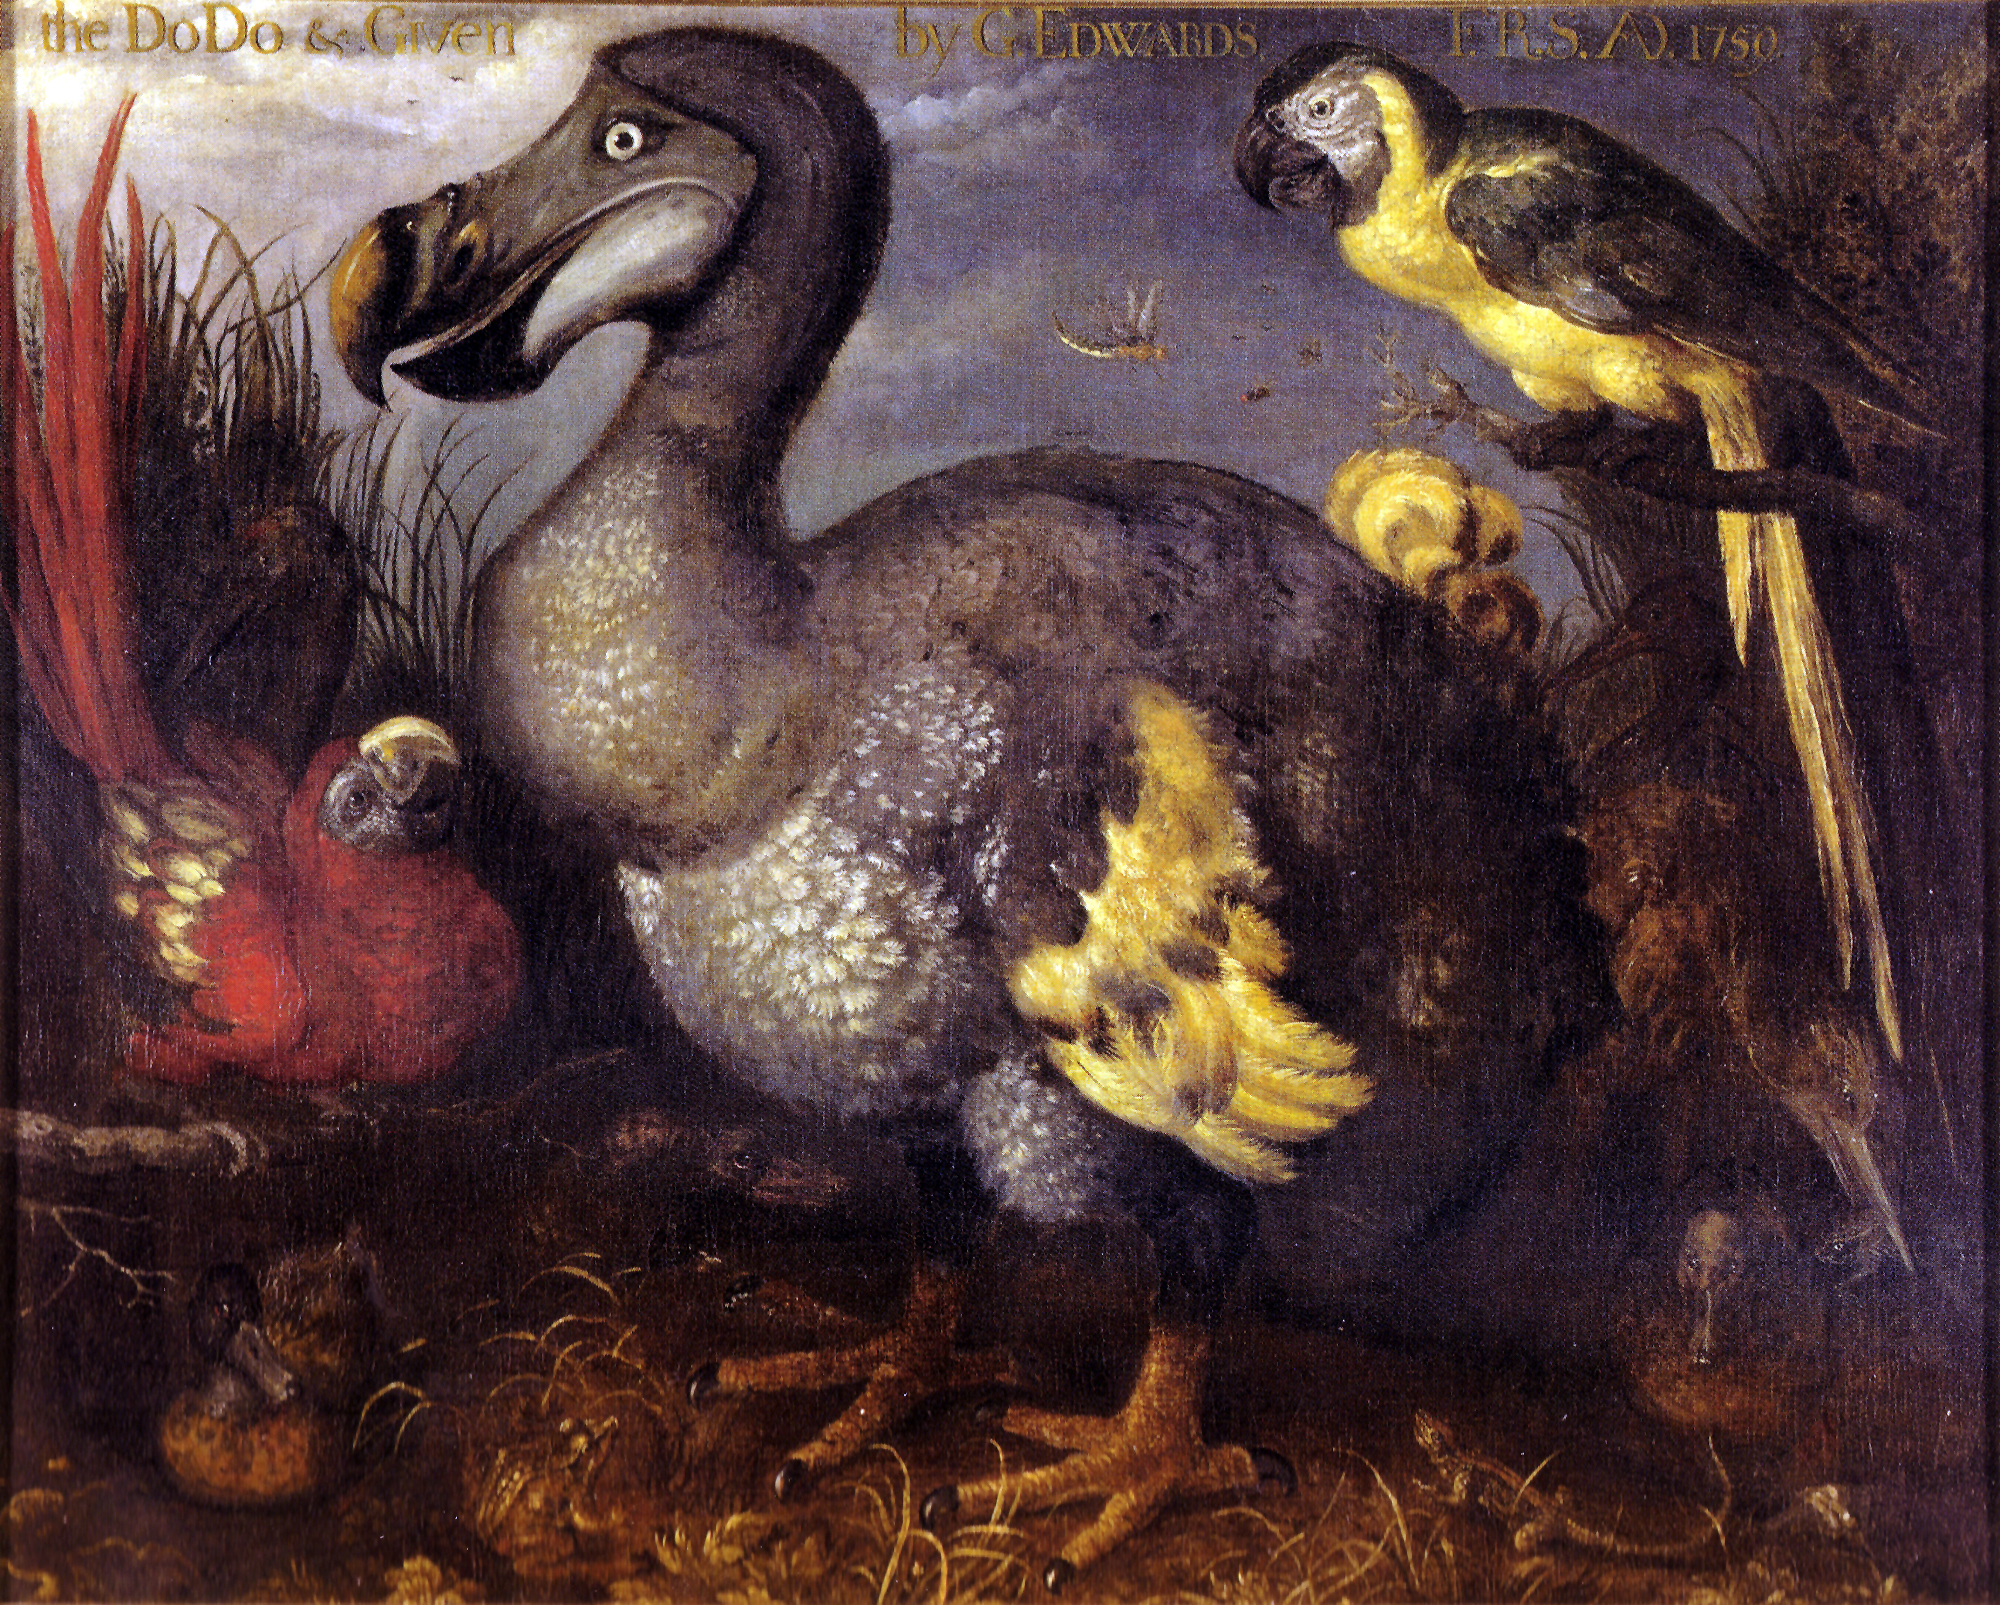 Le Dodo de George Edwards